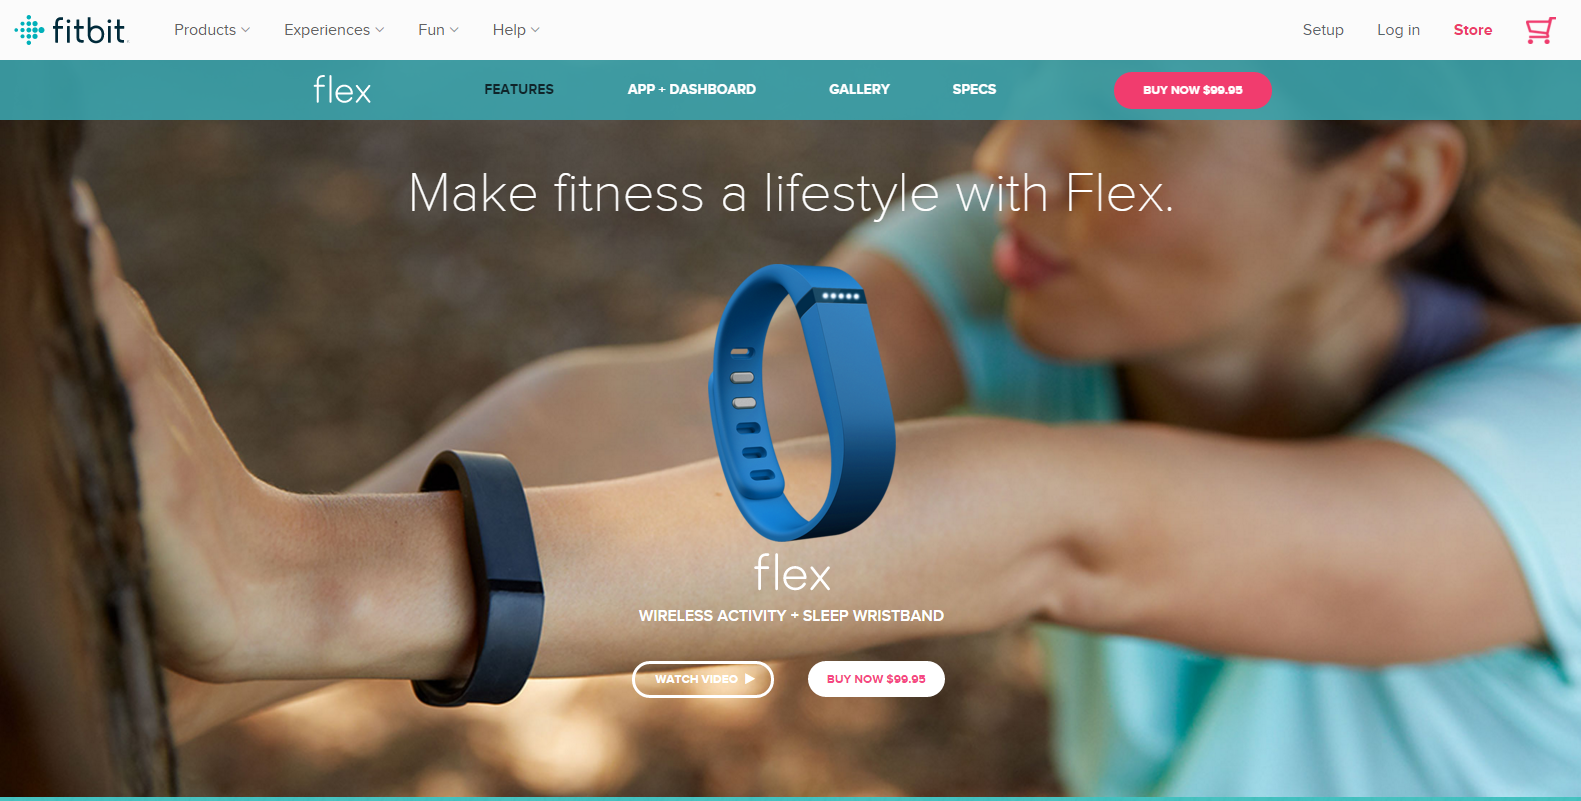 1. Fitbit